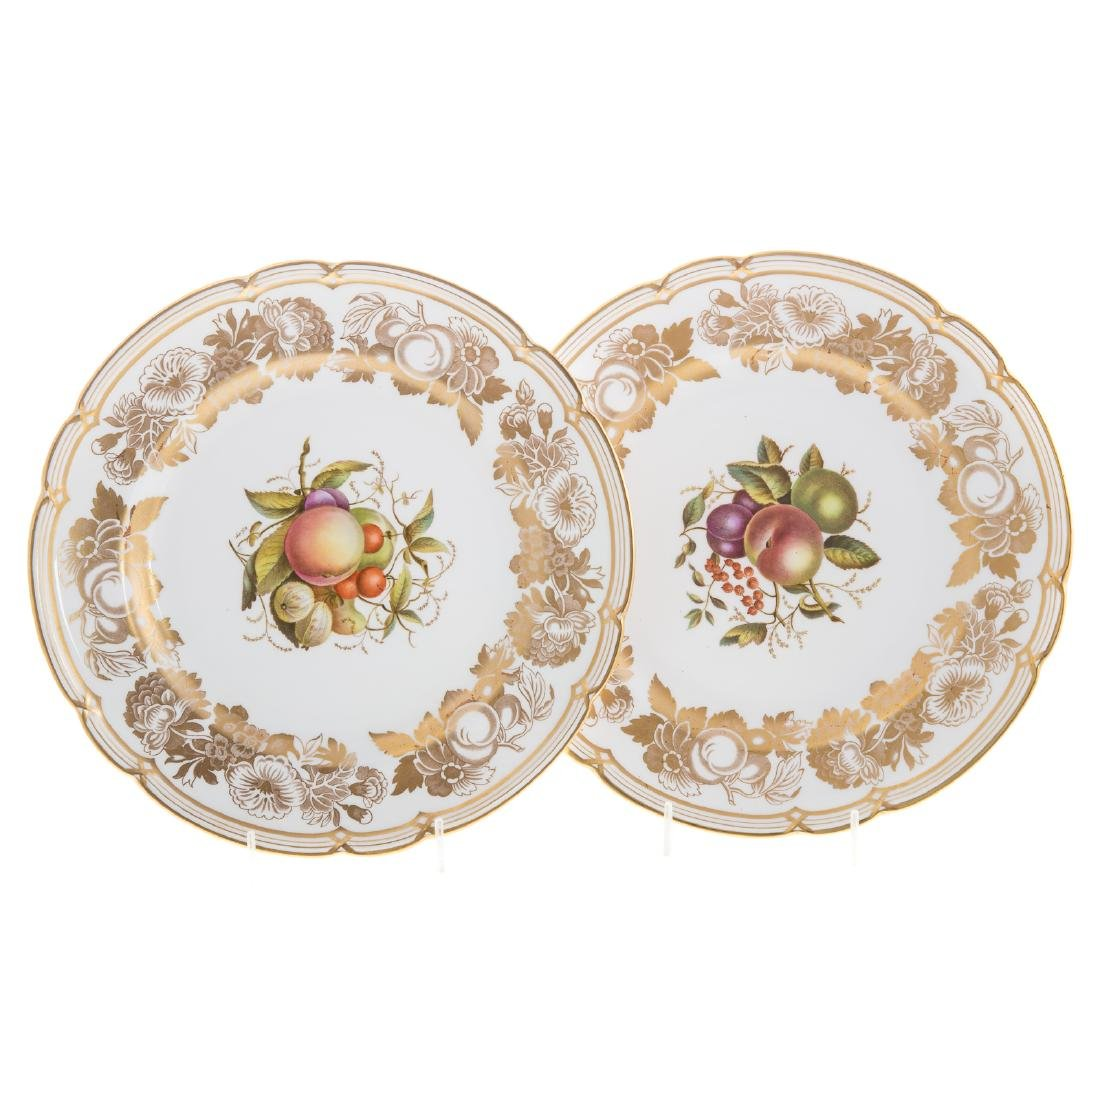 12 Spode bone china dinner plates - 4